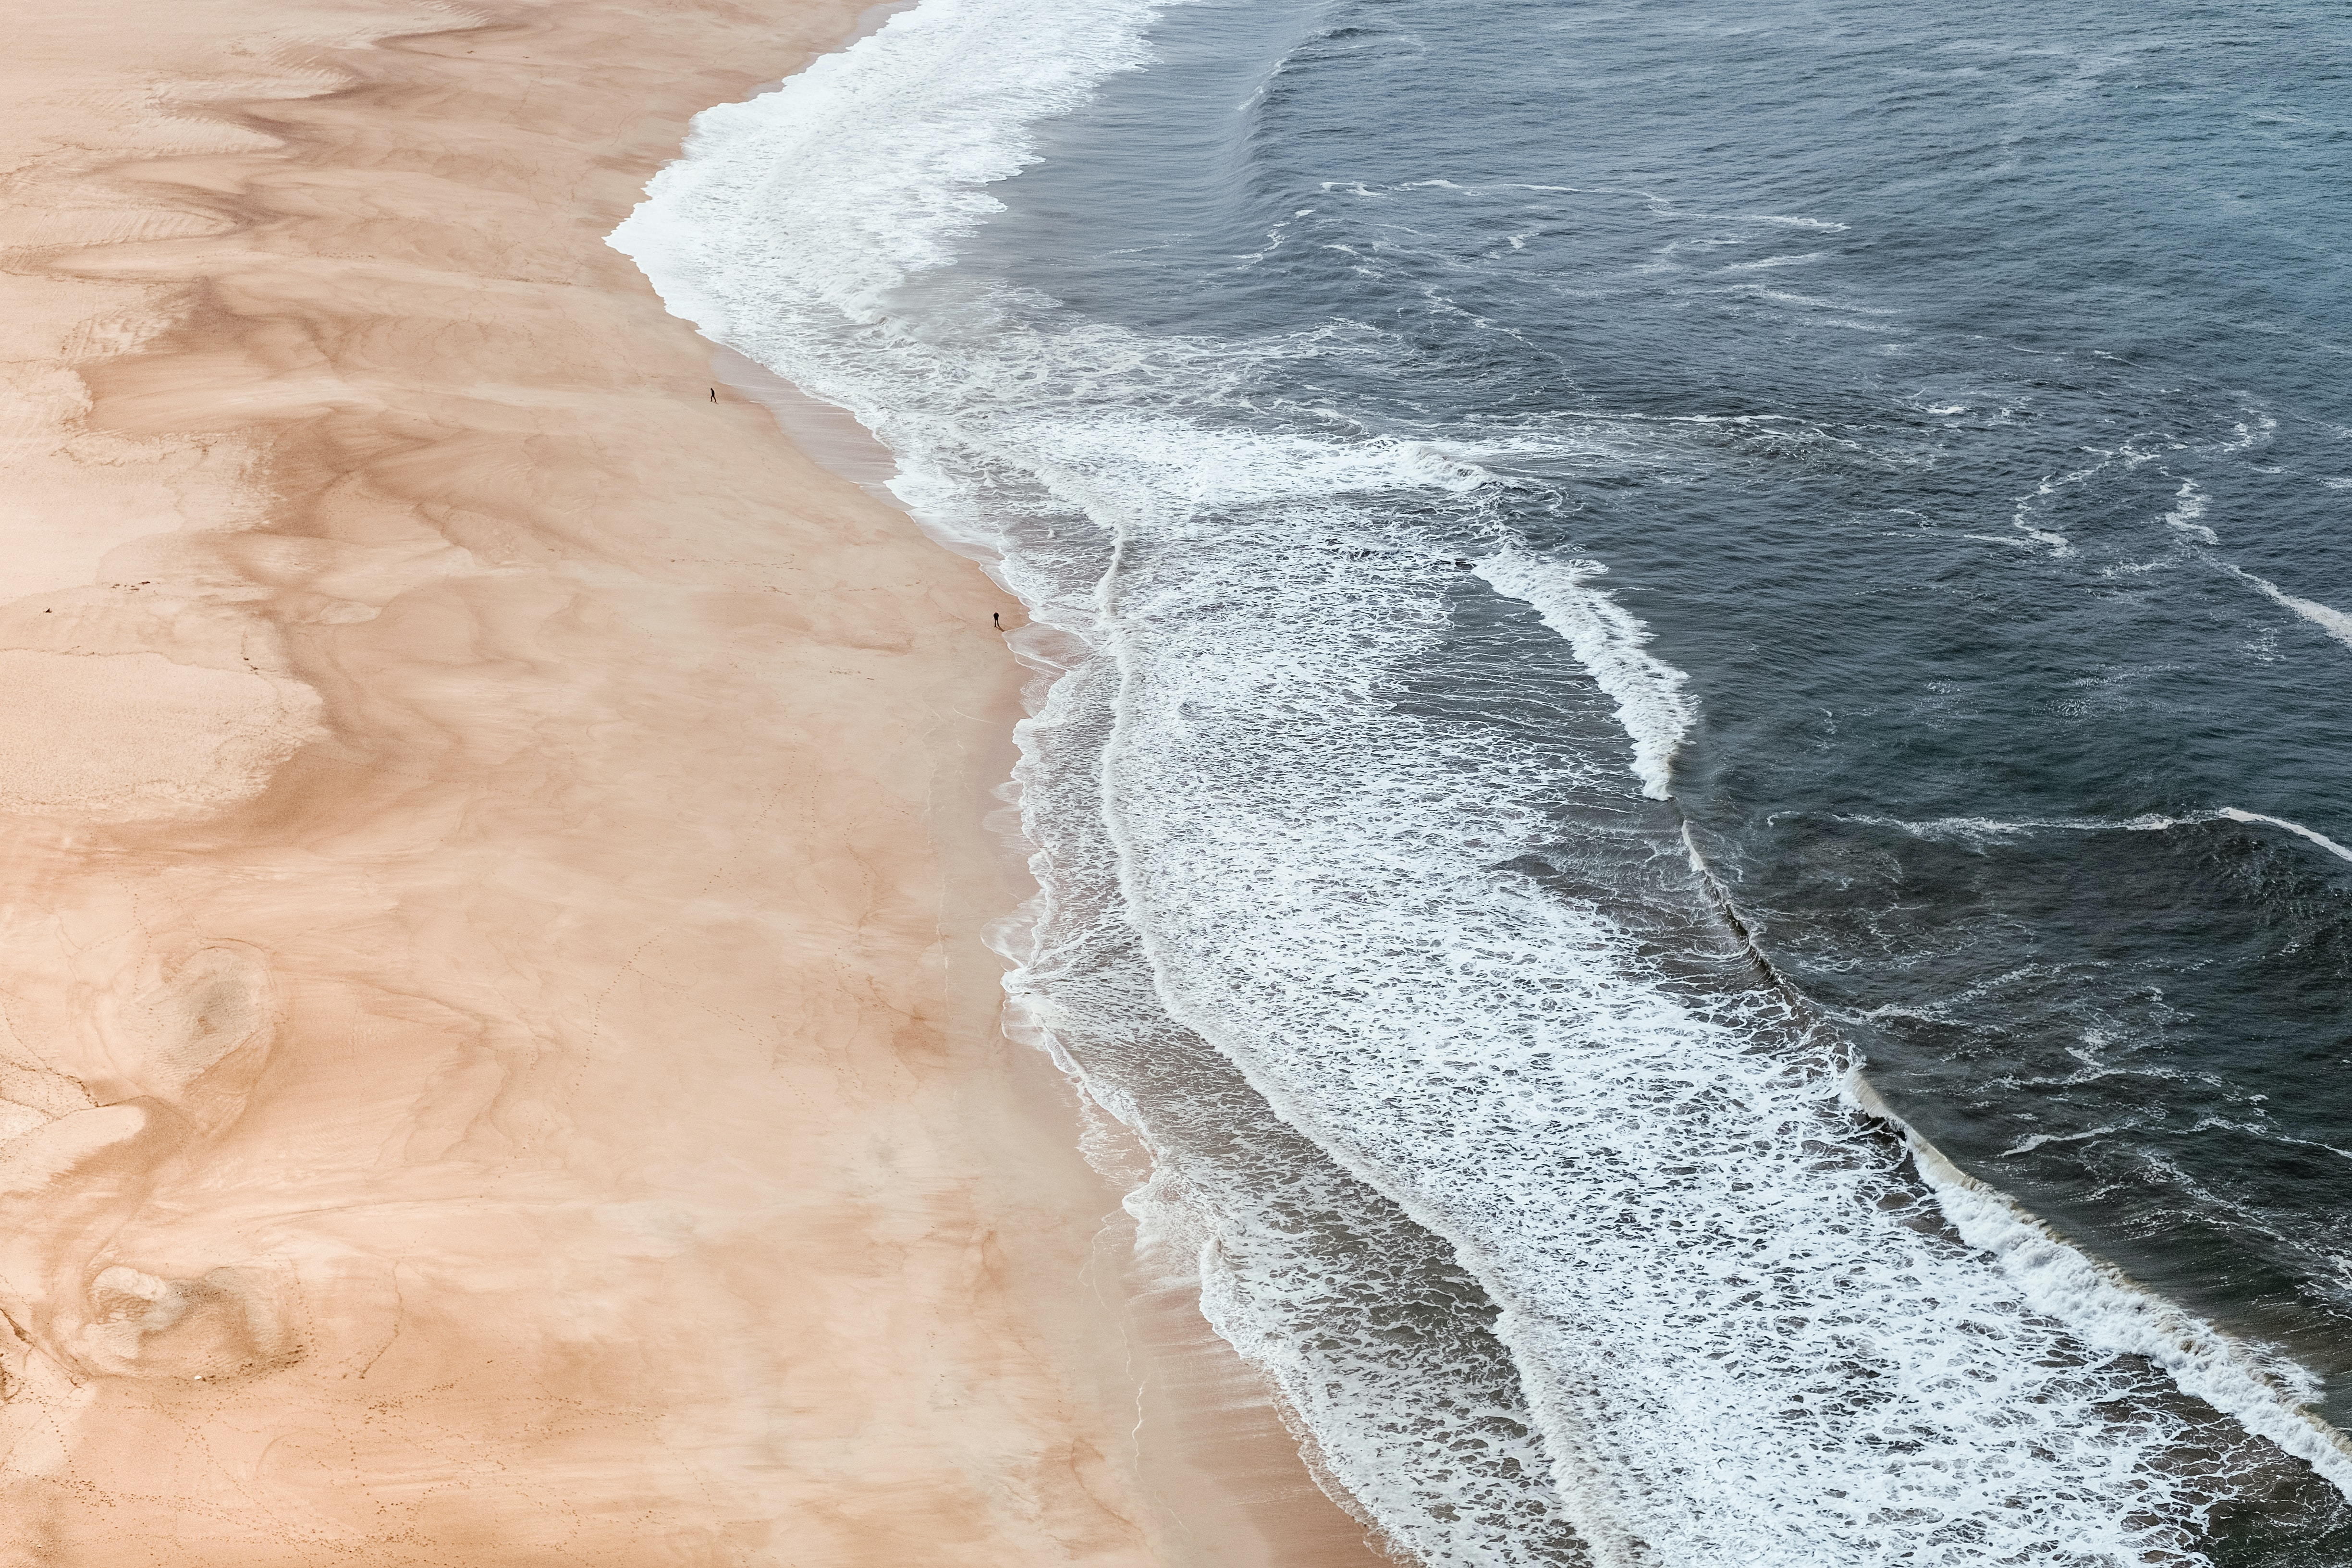 Drone view of the ocean washing on the sand beach coastline at Nazaré